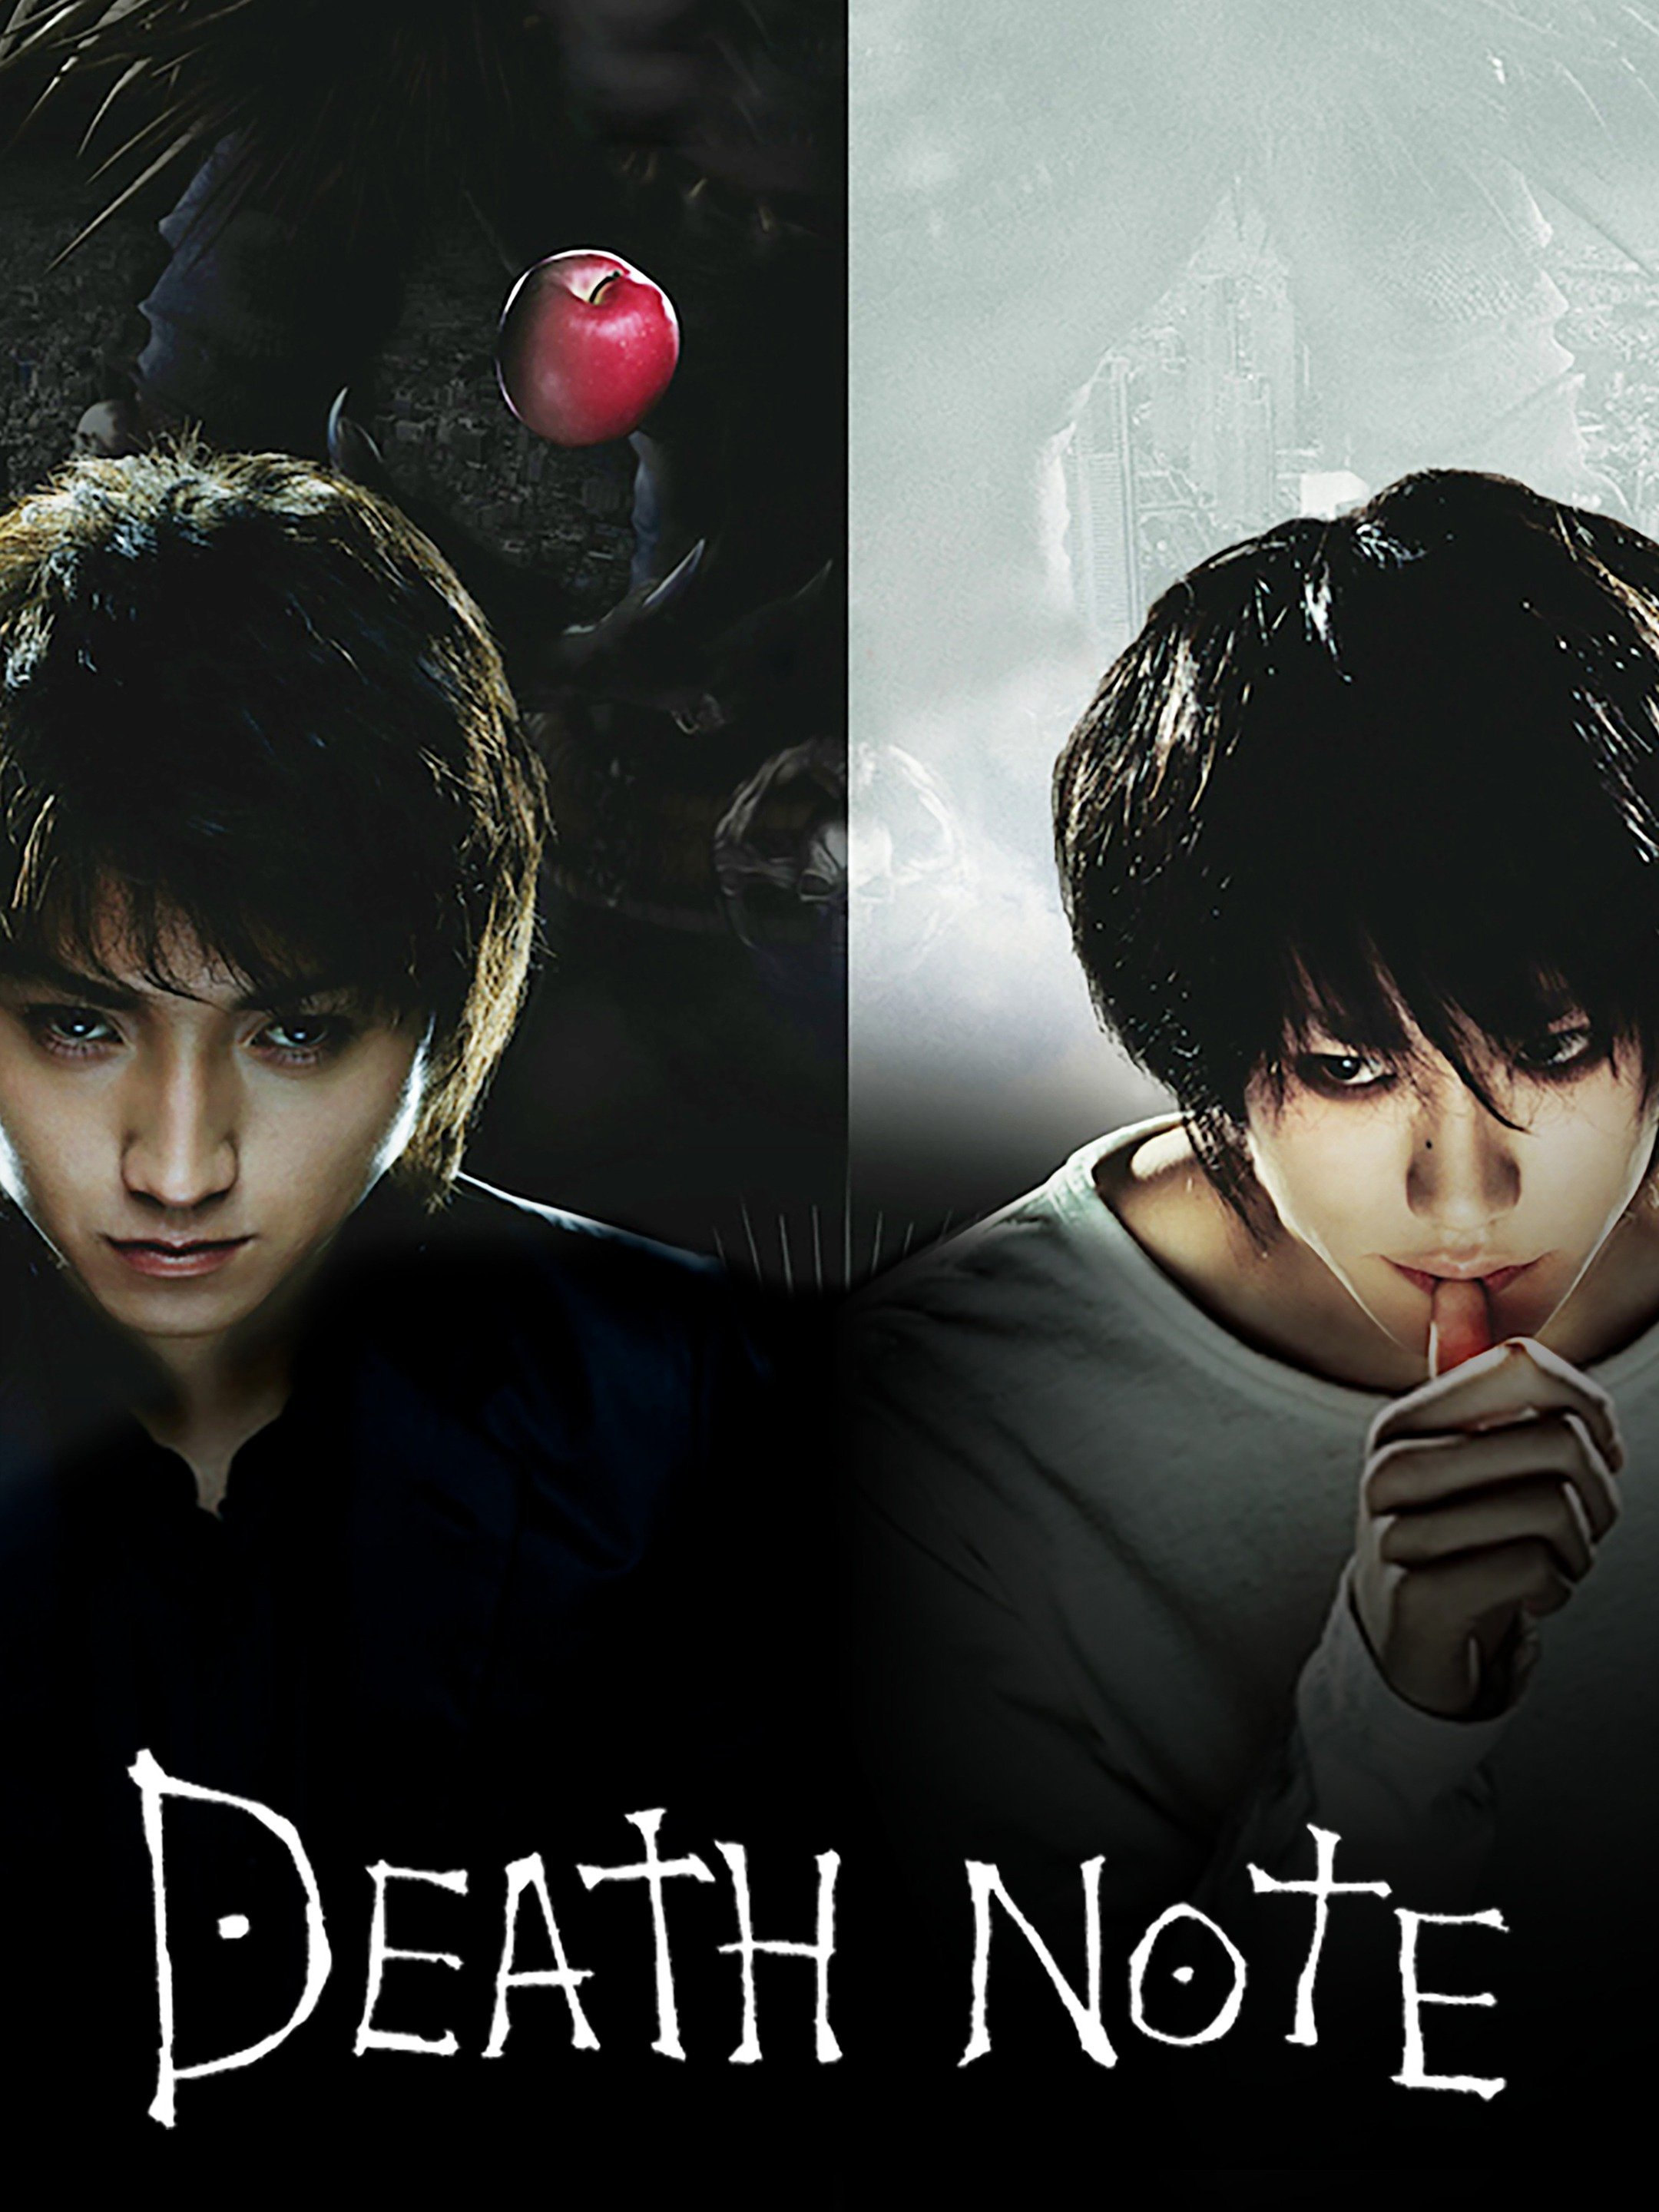 Death Note (2006) - Rotten Tomatoes